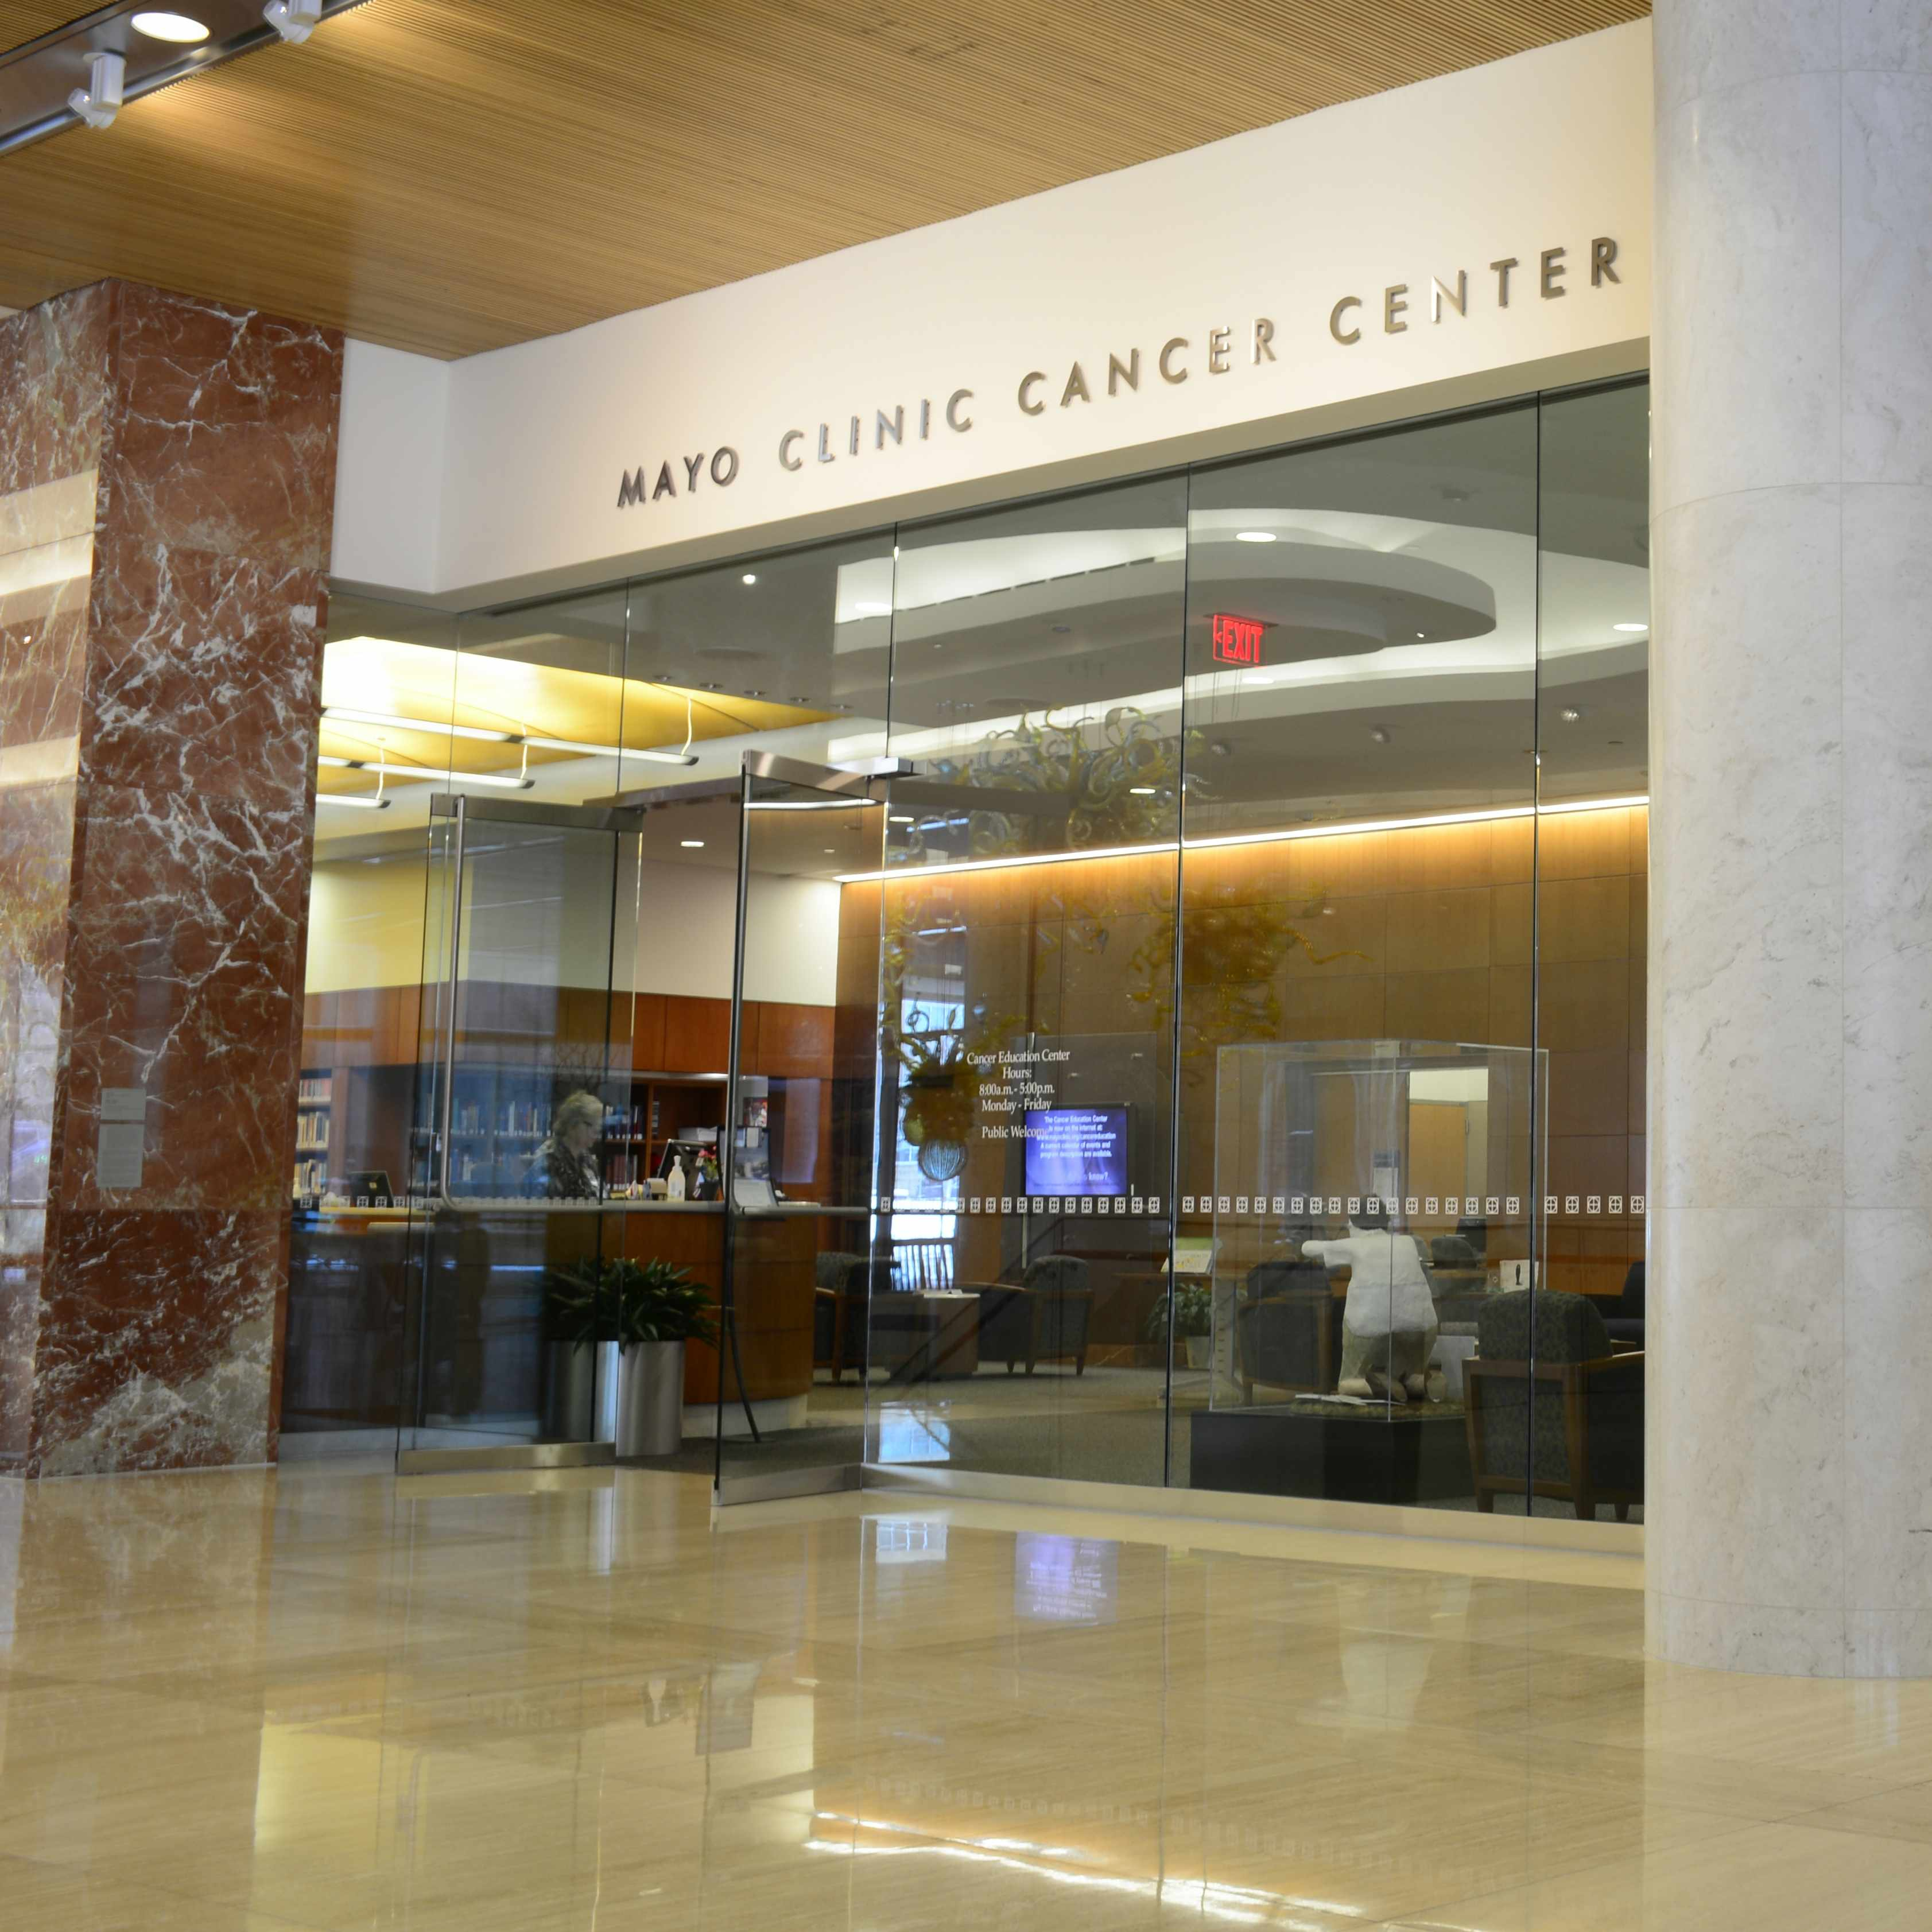 lobby picture of Mayo Clinic Cancer Center